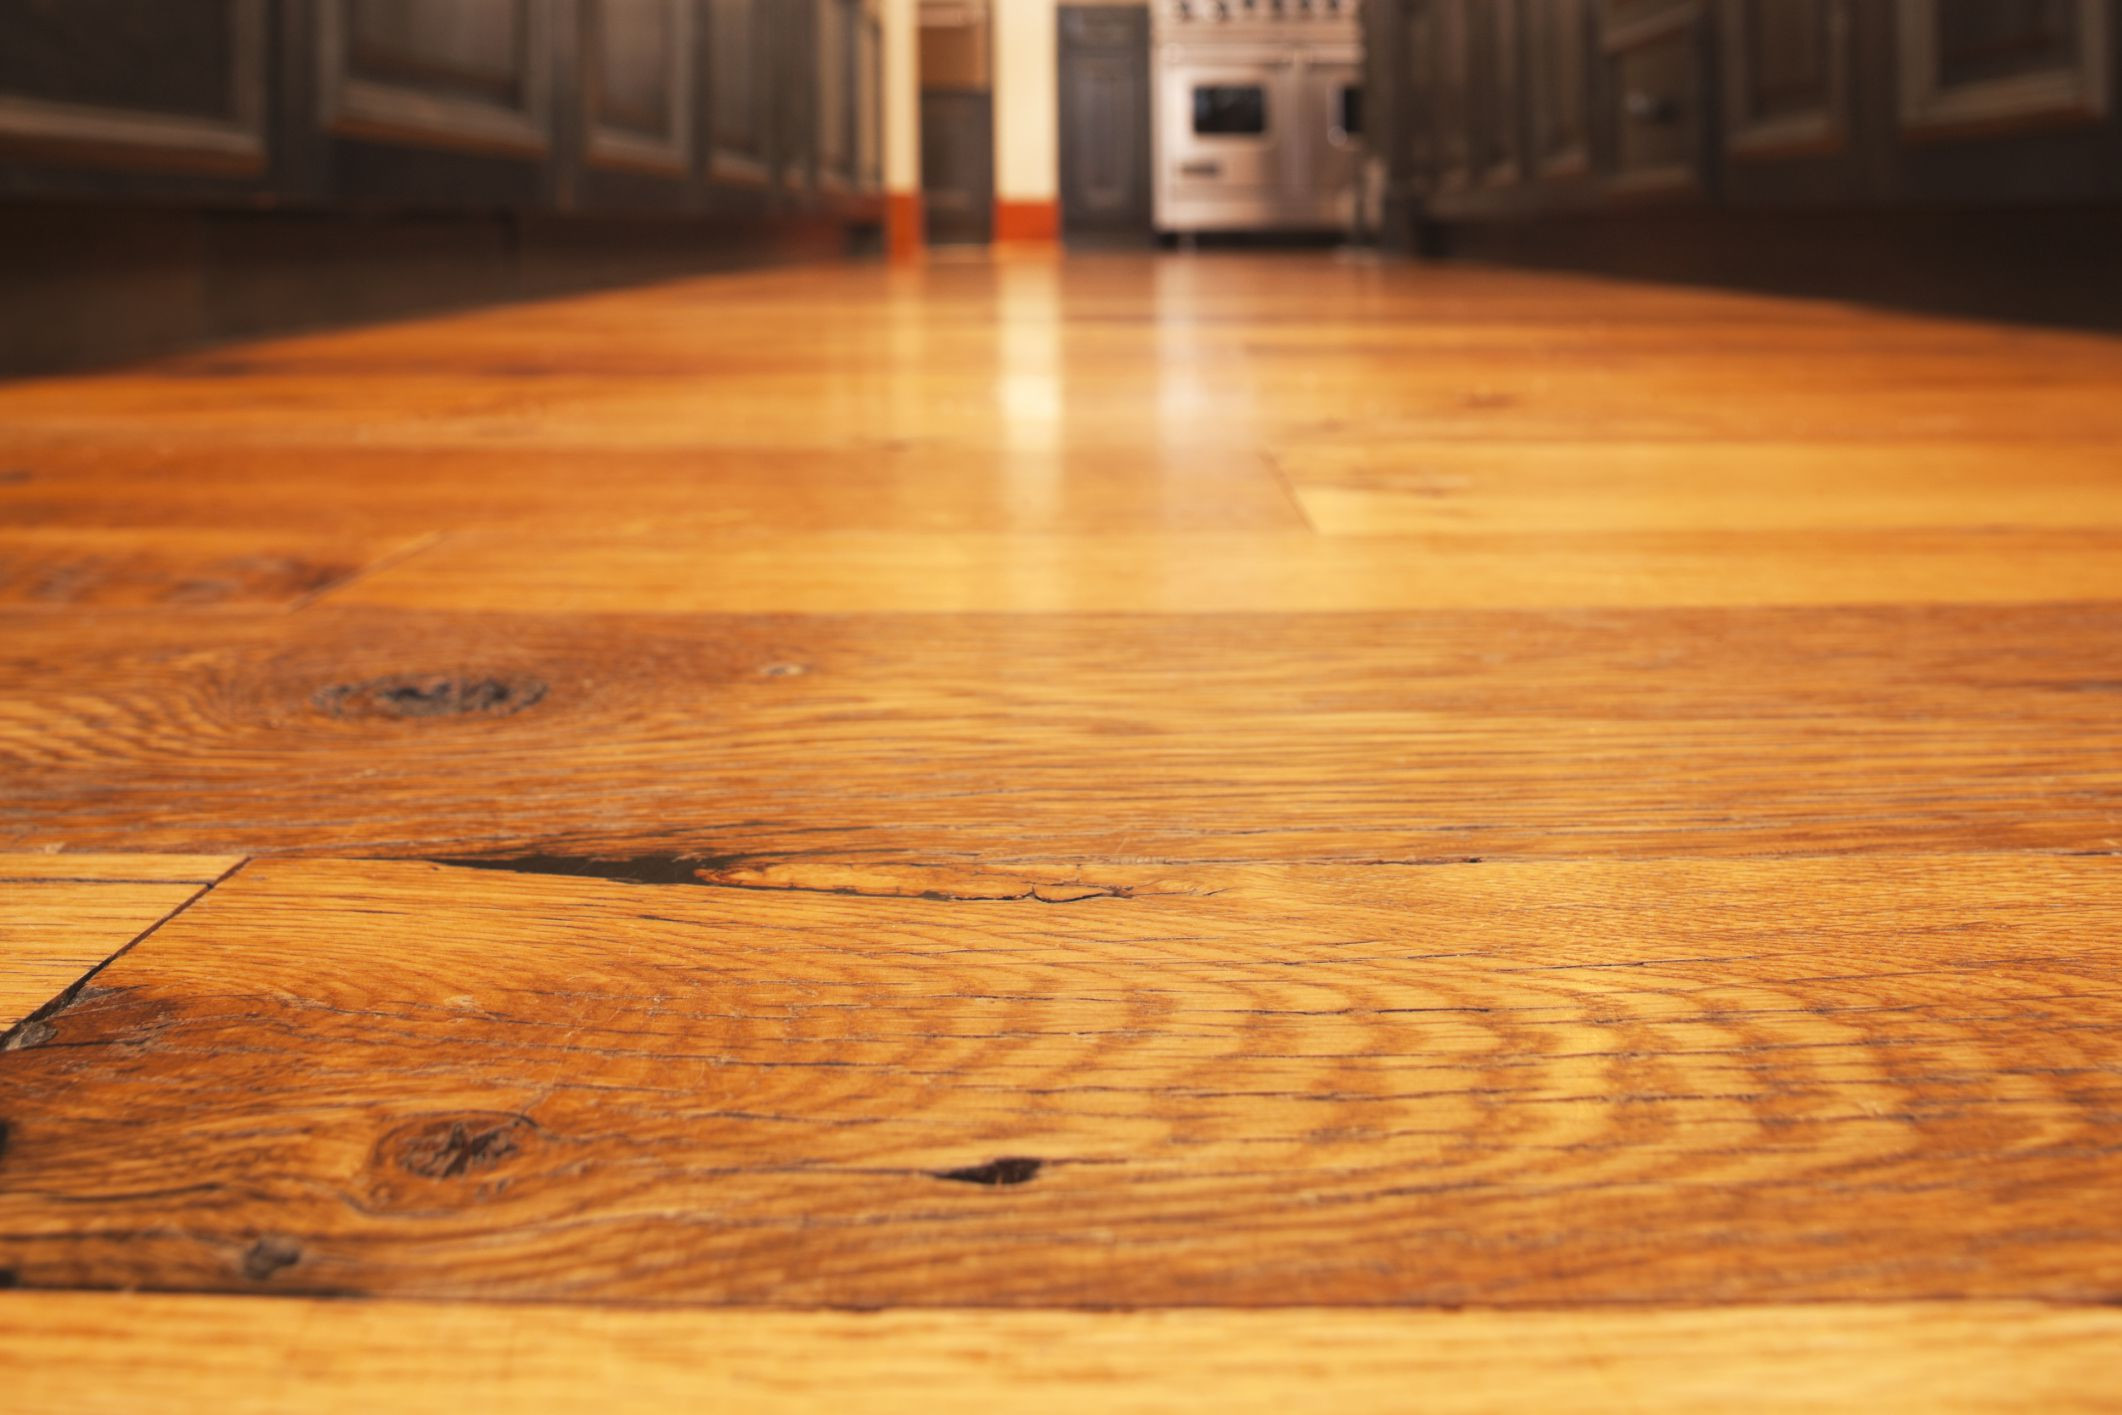 Cleaning Bruce Prefinished Hardwood Floors Of why A Microbevel is On Your Flooring for Wood Floor Closeup Microbevel 56a4a13f5f9b58b7d0d7e5f4